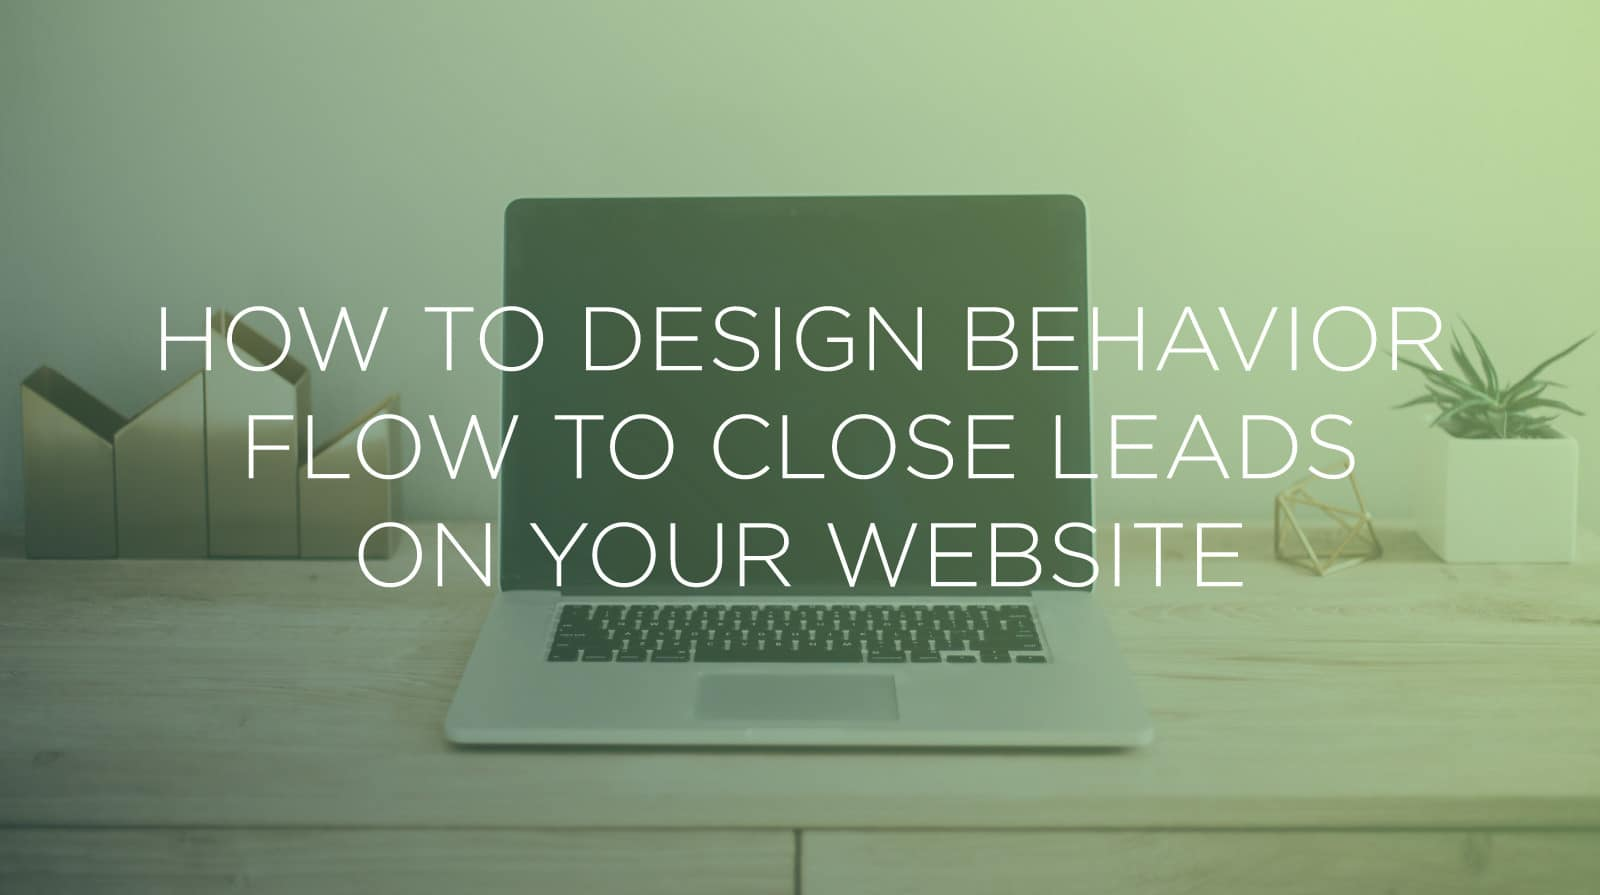 How to Design Behavior Flow to Close Leads on Your Website